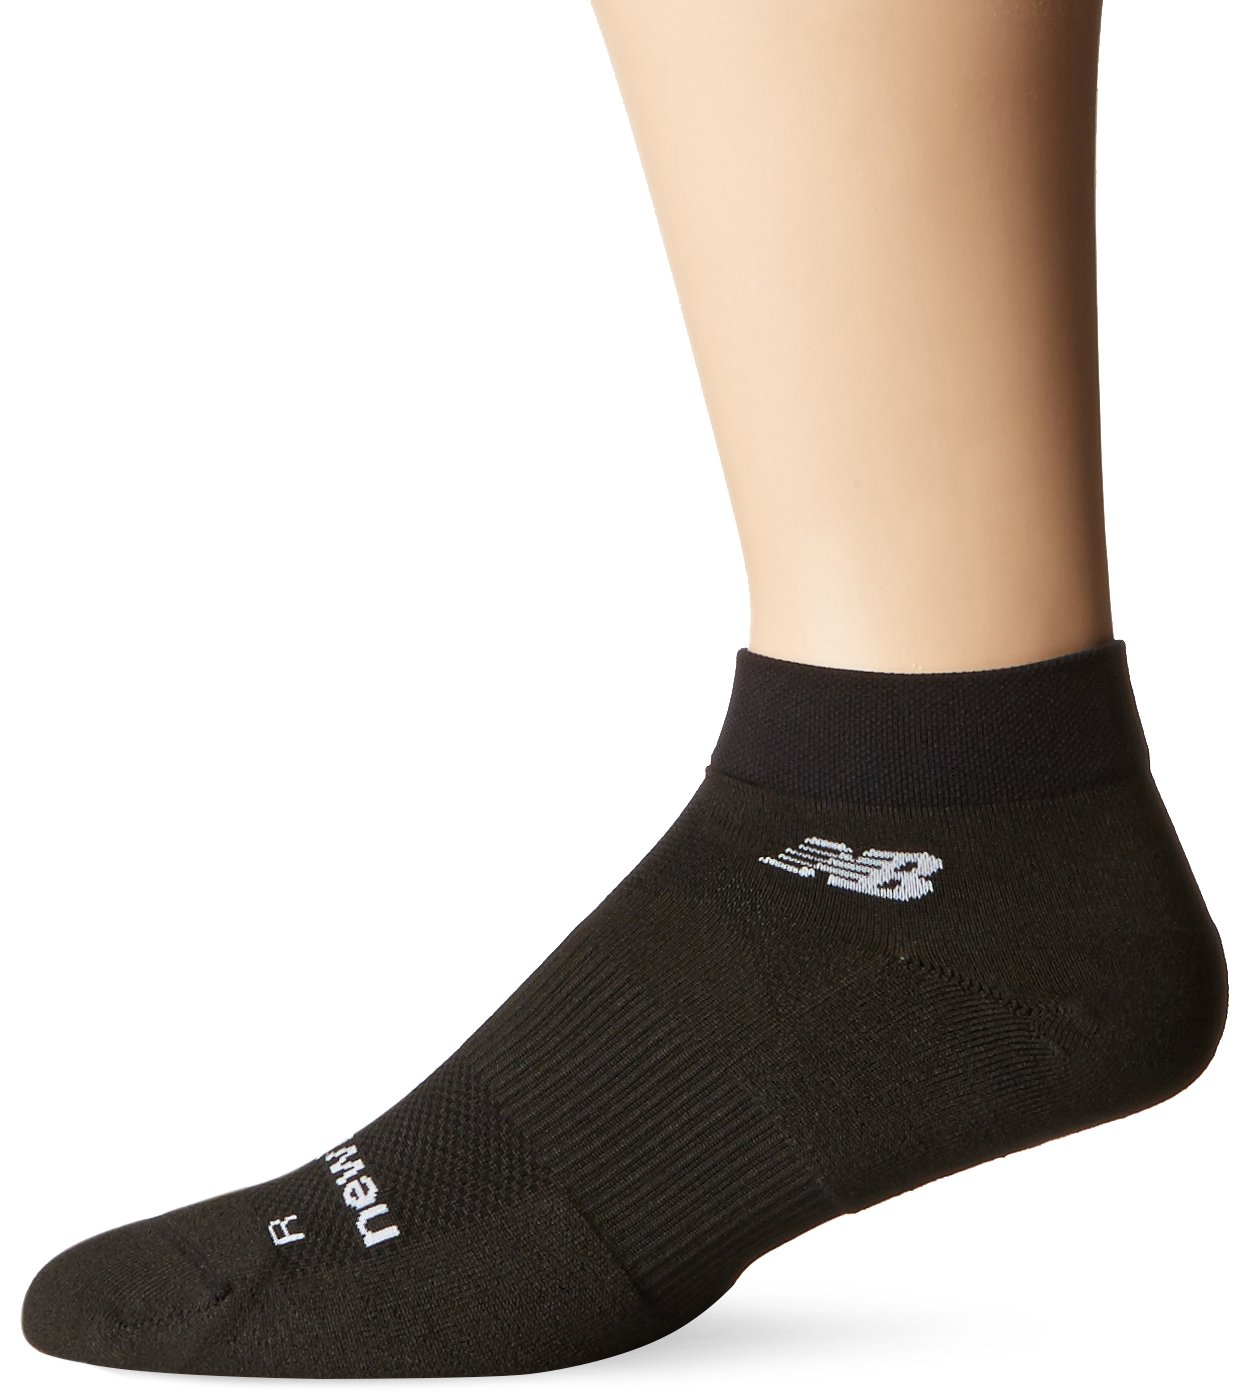 New Balance Unisex 1 Pack Technical Elite Nbx Olefin Quarter Socks